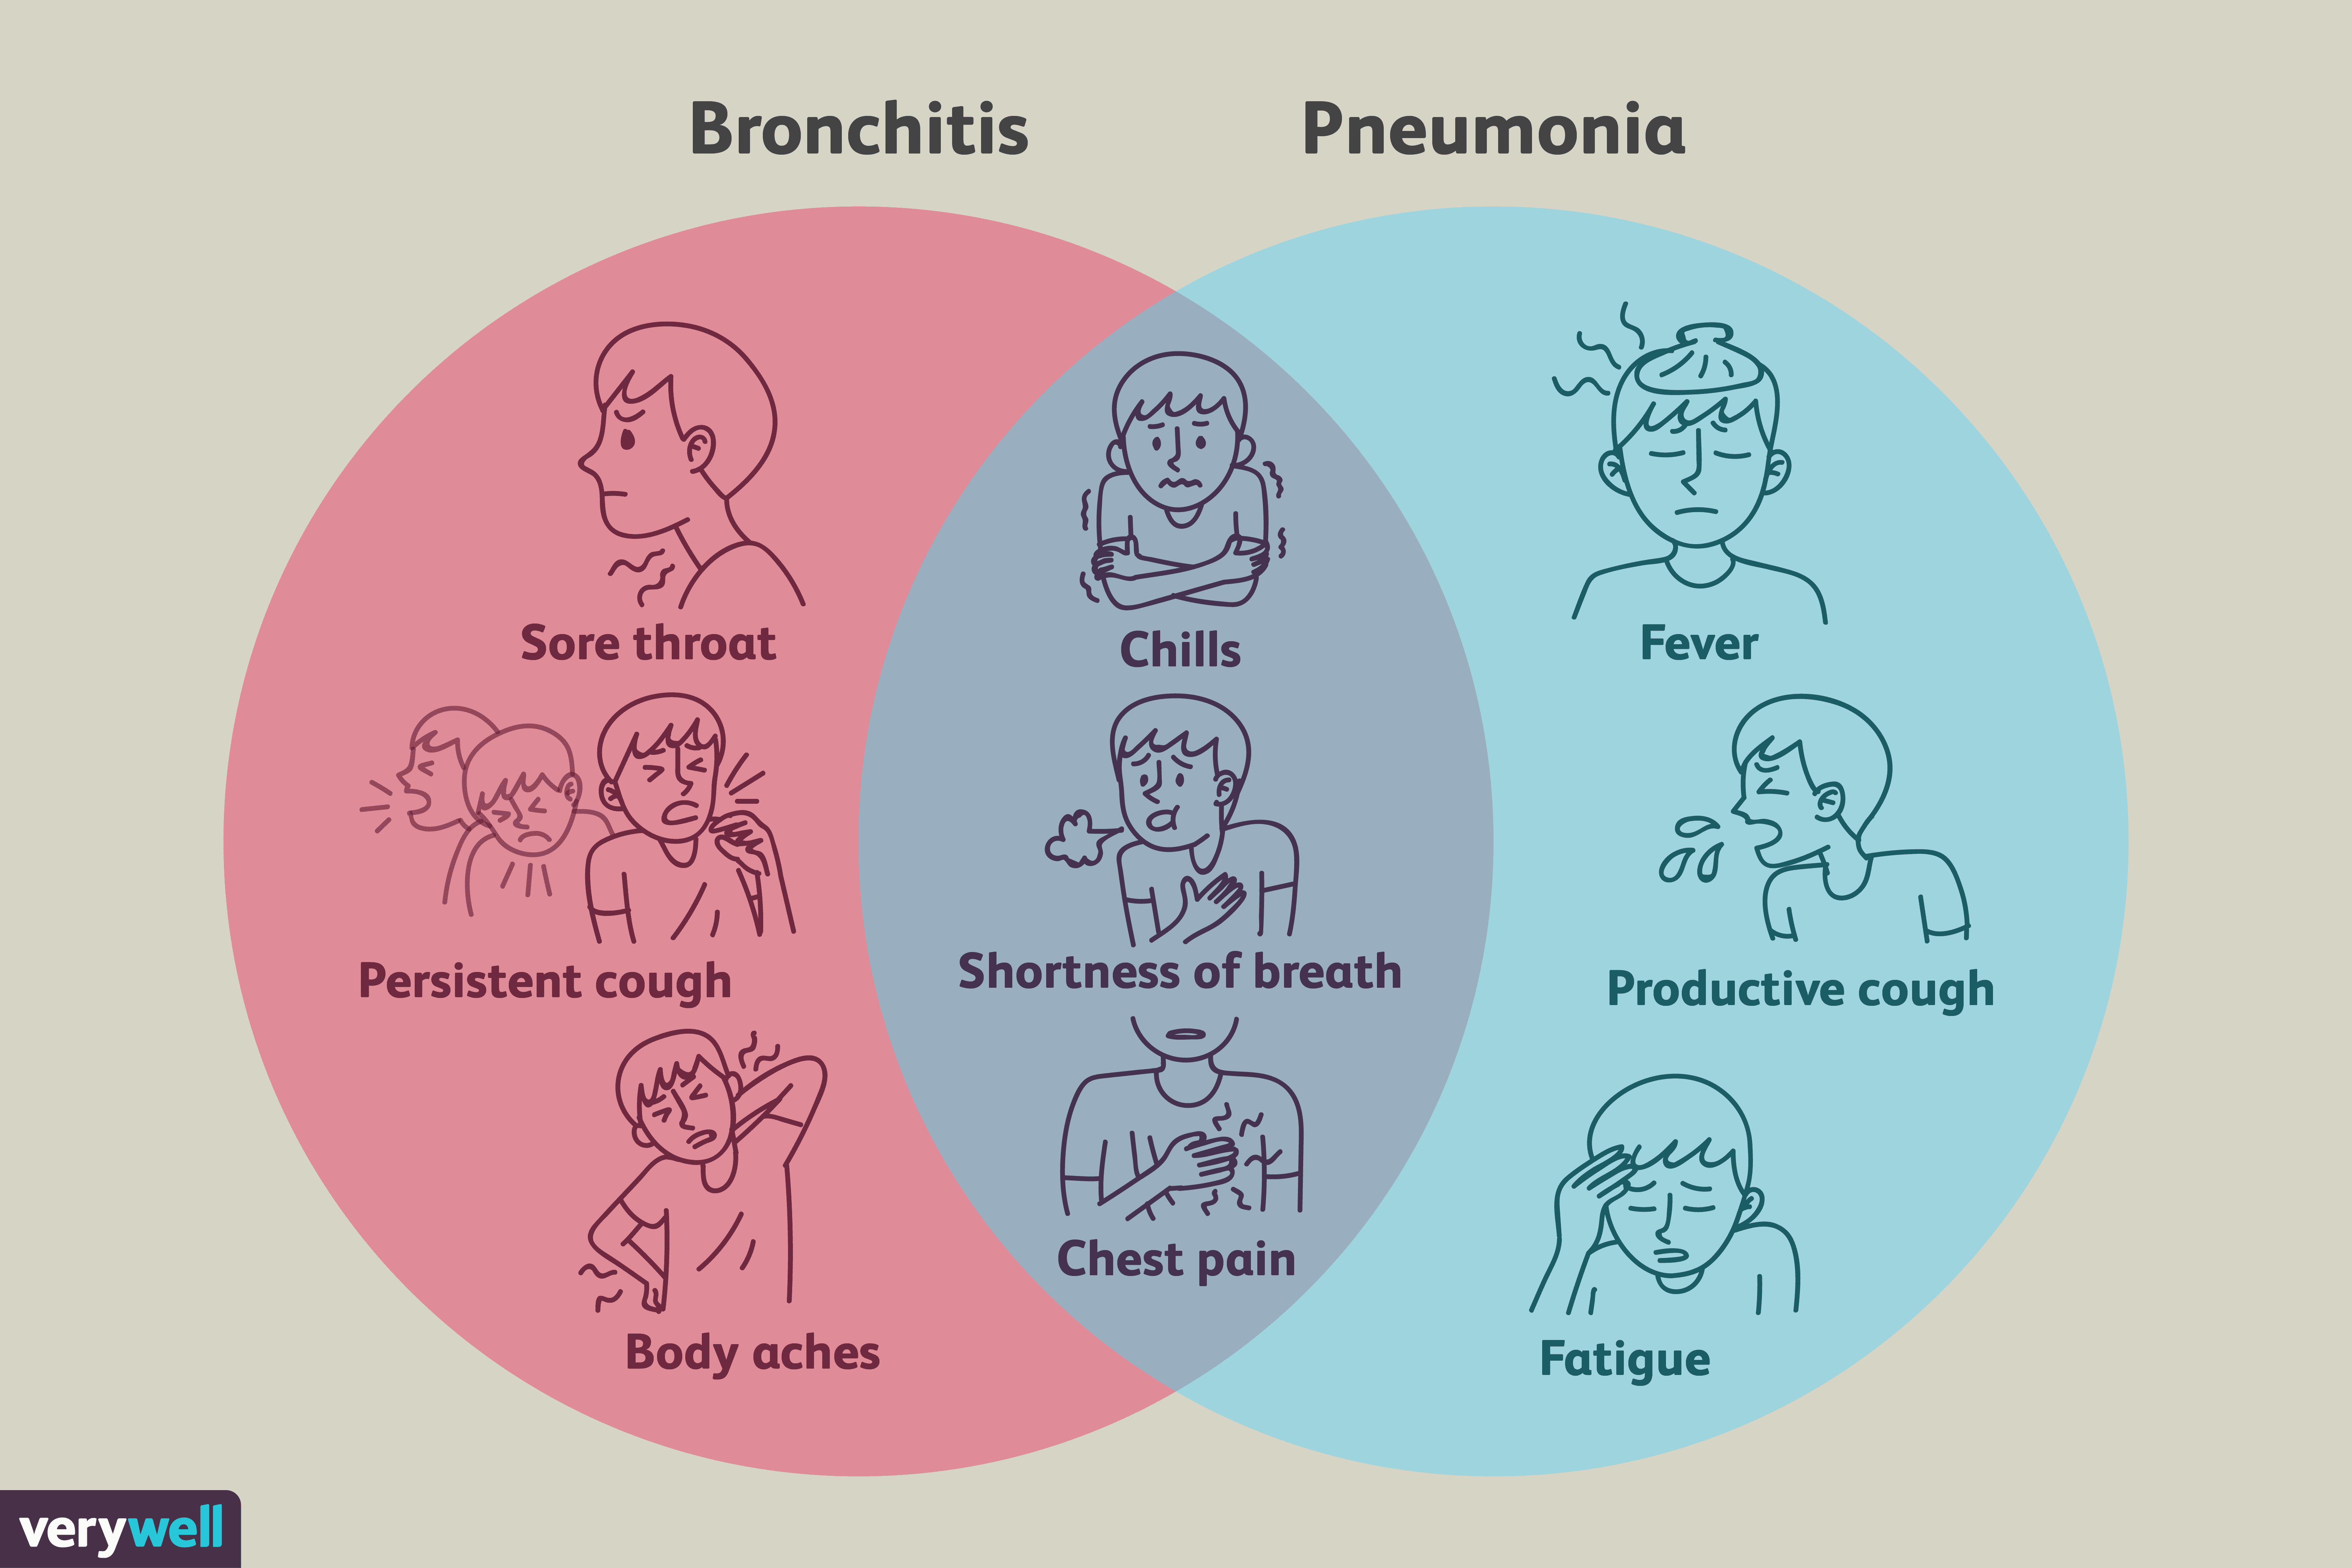 a clinical description of the causes and treatment of bronchitis Bronchitis is an infection of the tubes or bronchi that lead to the lungs symptoms include a cough, wheezing, sore throat, and blocked nose and sinuses.